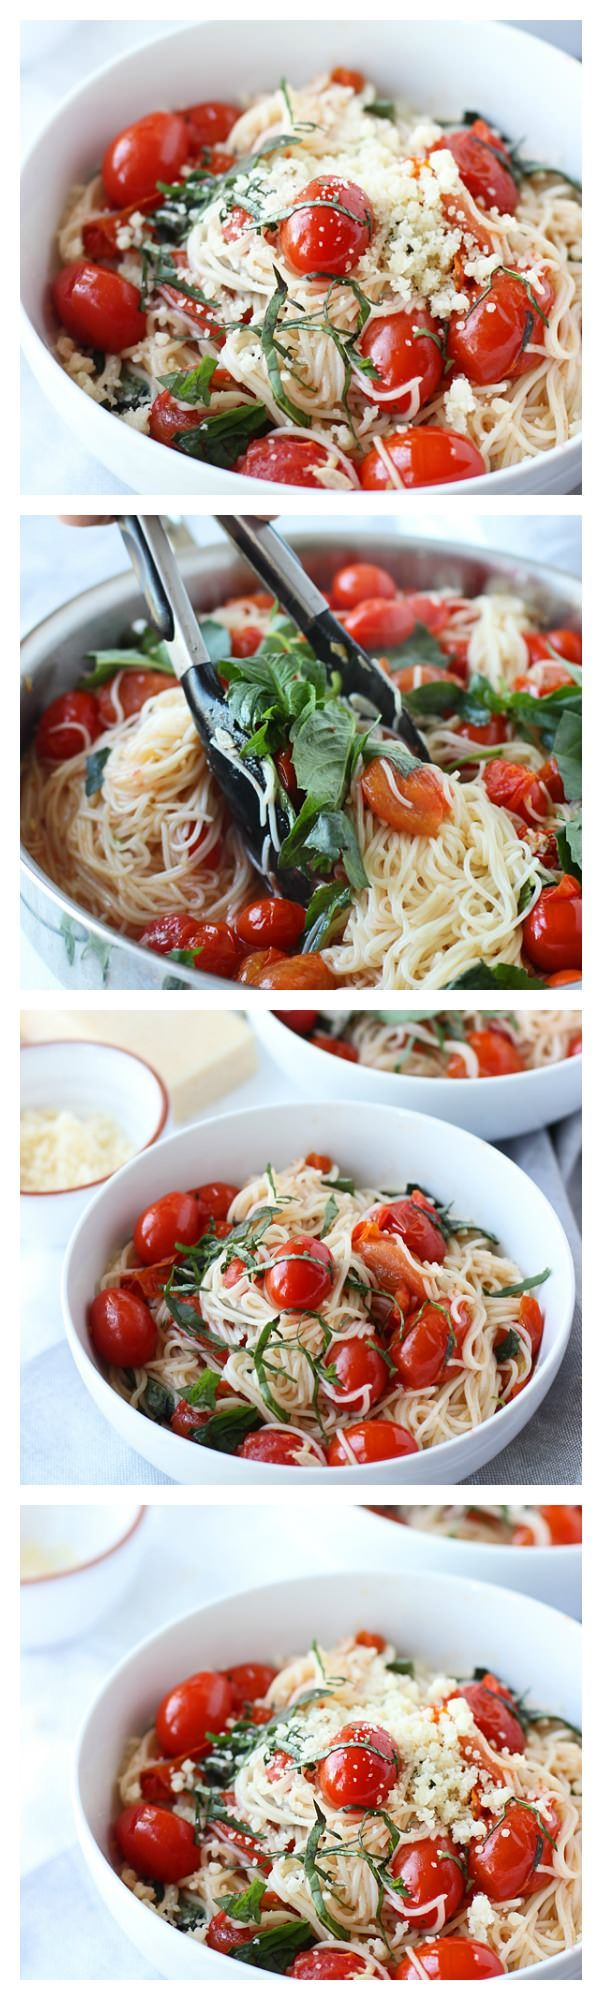 20 Minute Cherry Tomato and Basil Angel Hair Pasta by oweetbasil: Simple, fresh and delicious.